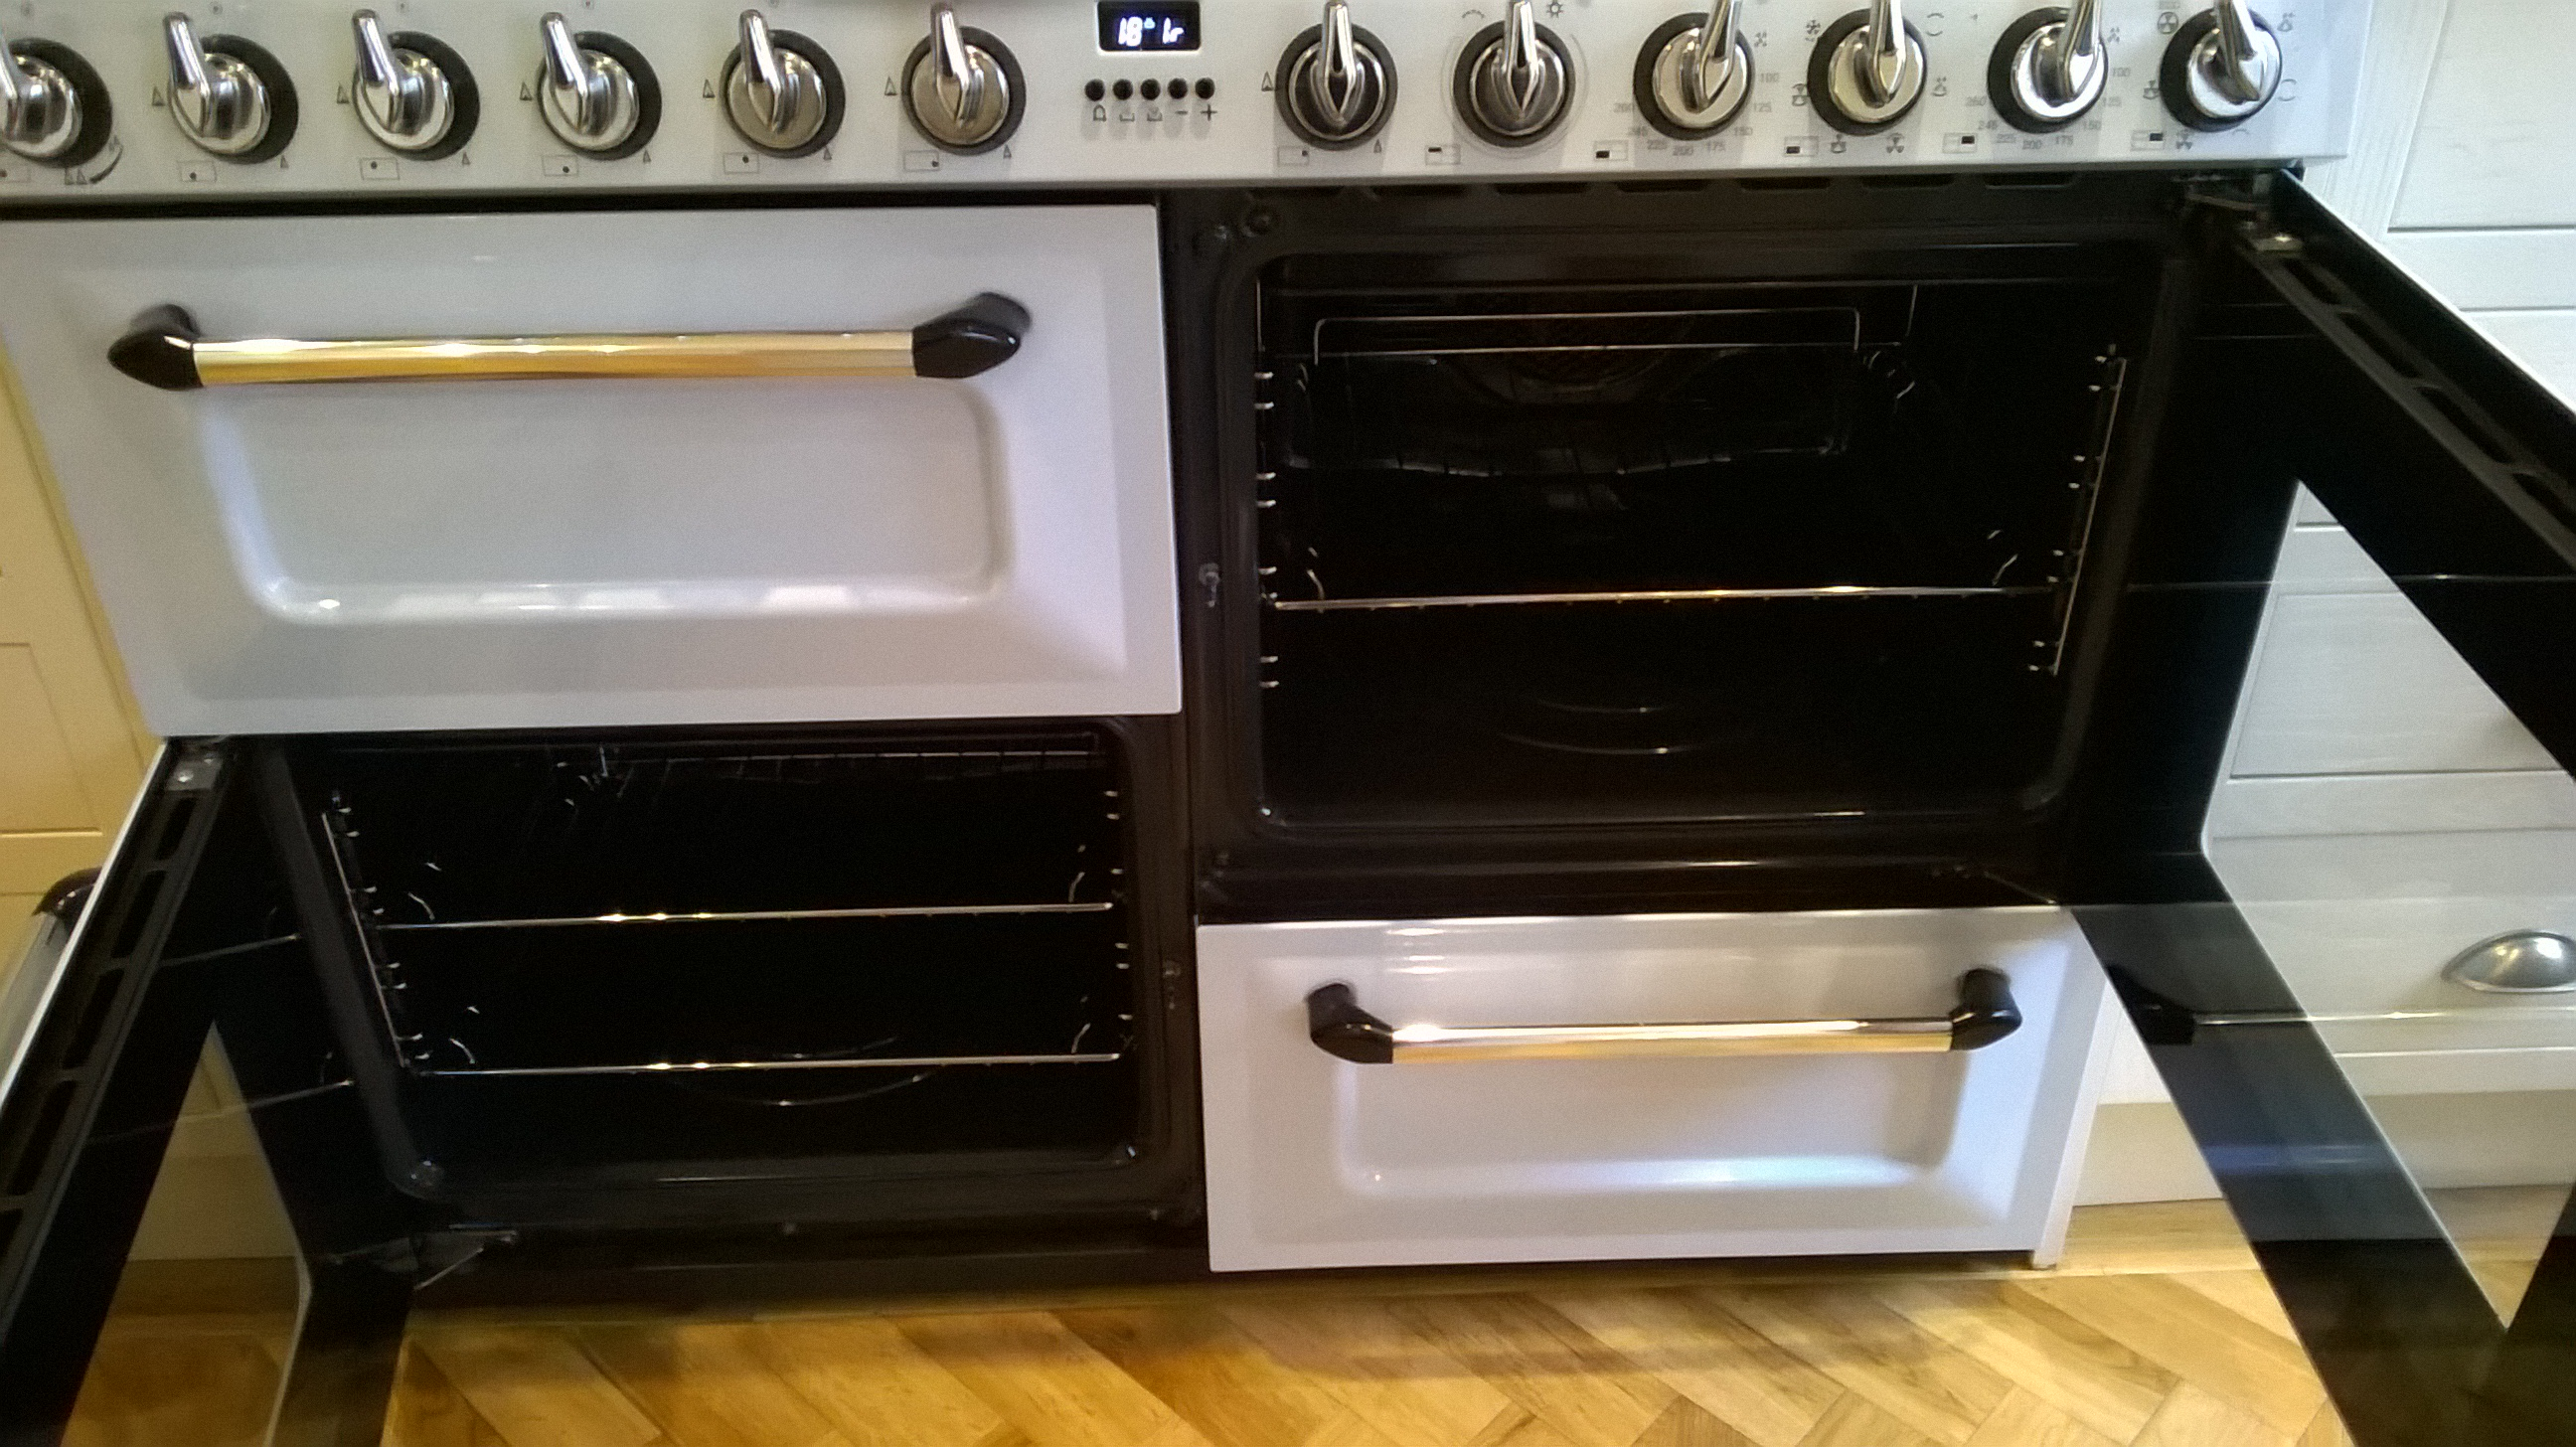 Oven cleaning example 4